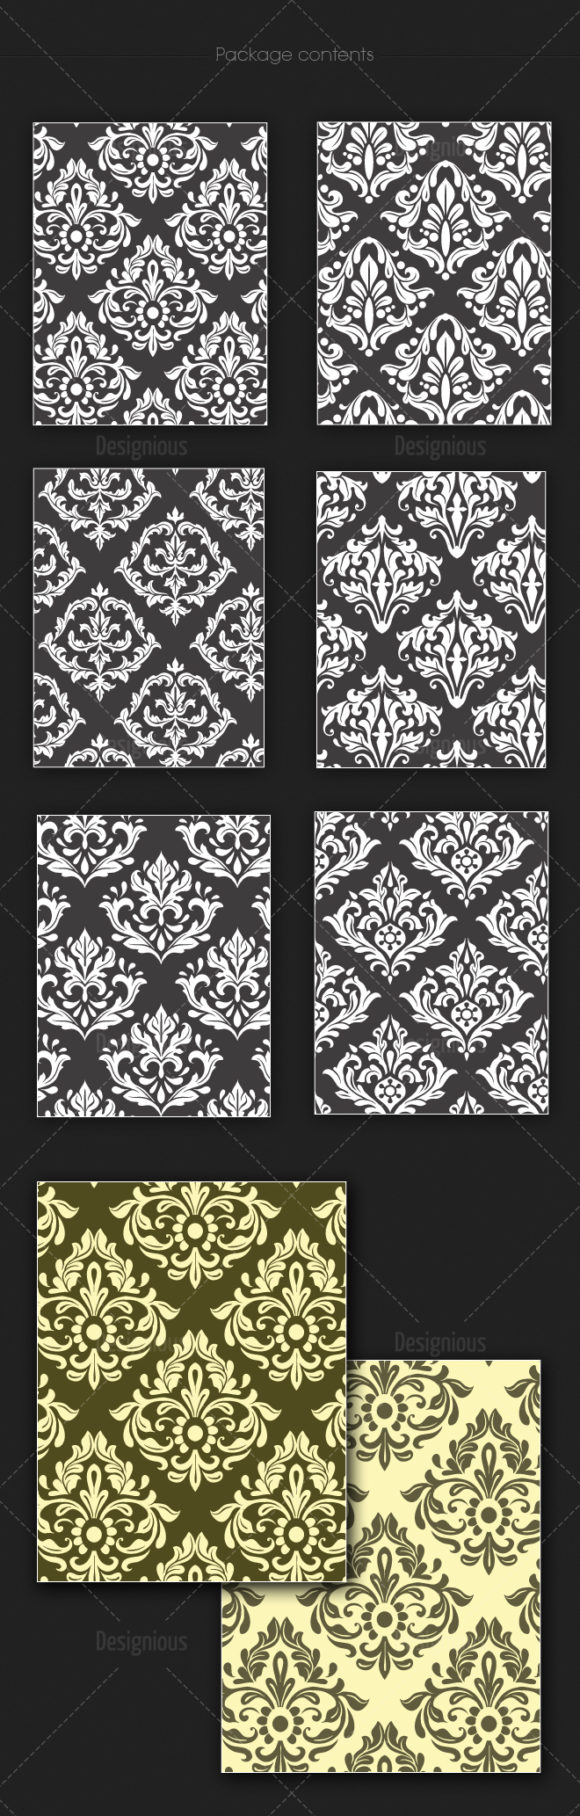 Seamless Patterns Vector Pack 136 6